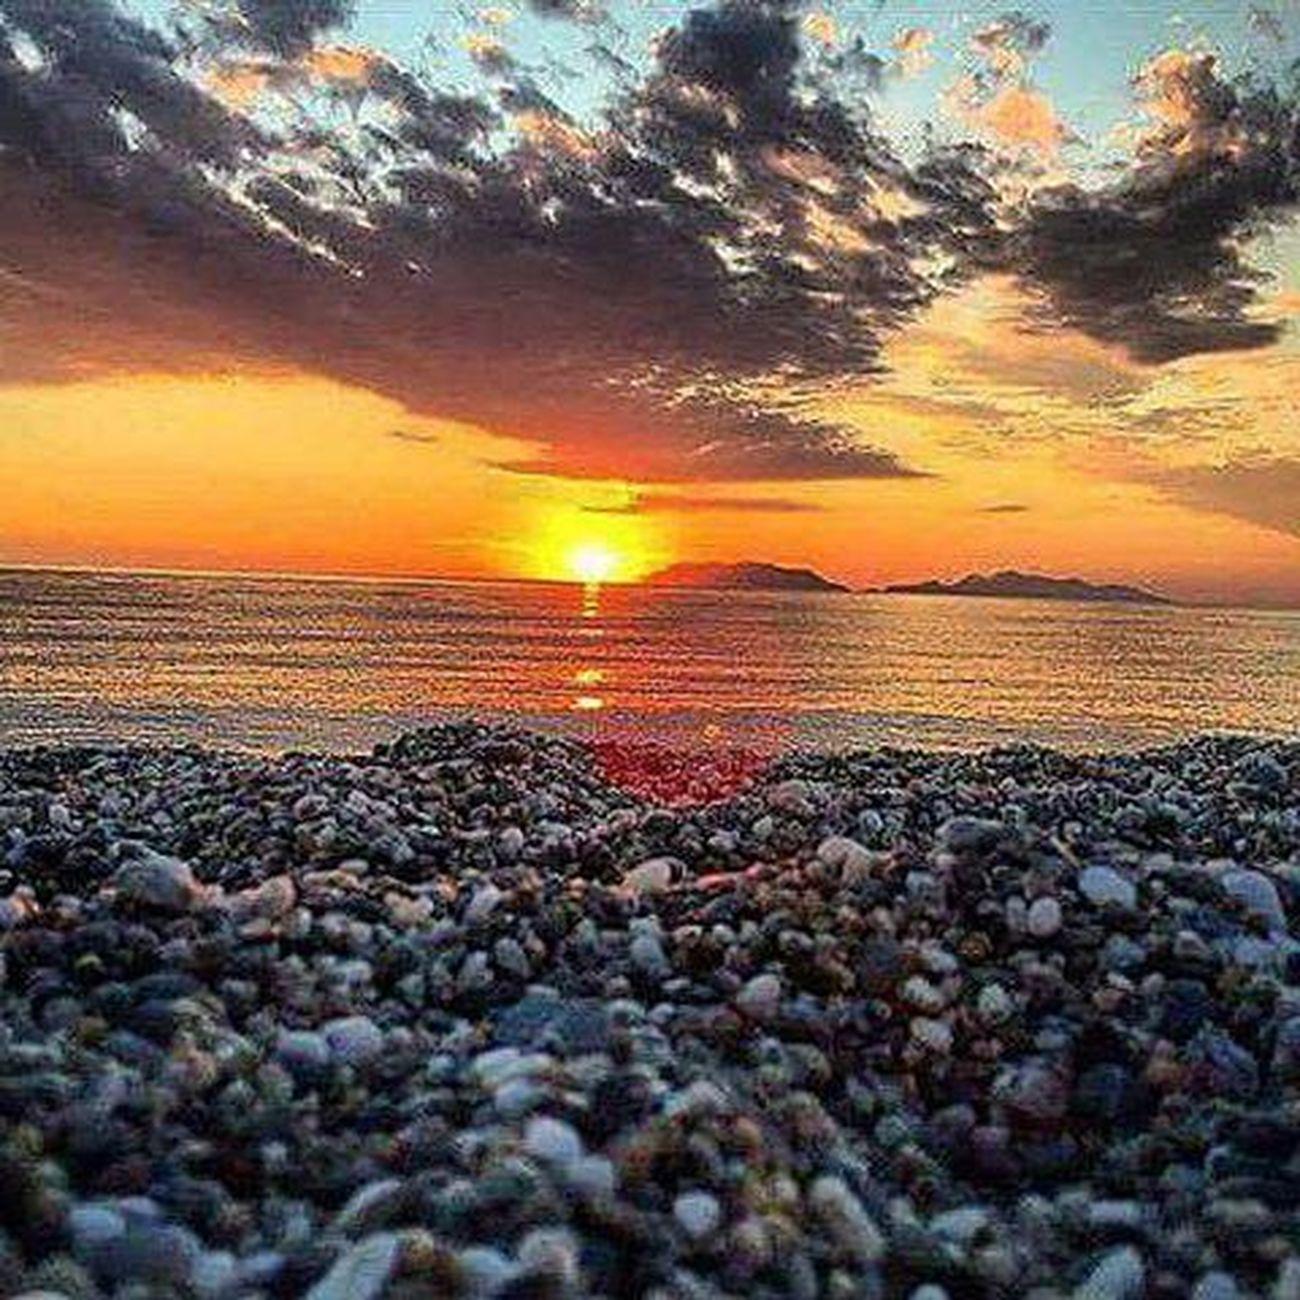 "Wonderful sunset! Milazzo Sunset Tramonto Summer ""PuertadelSol WhatElse Sun Beach Tono Relax Beautiful Lovesicily Nofilter Nocrop Nature Fotogrammi Follow Perspective Sol Naturelovers Nocrop Life Live Posting Vista made pic photoofday follow picture"